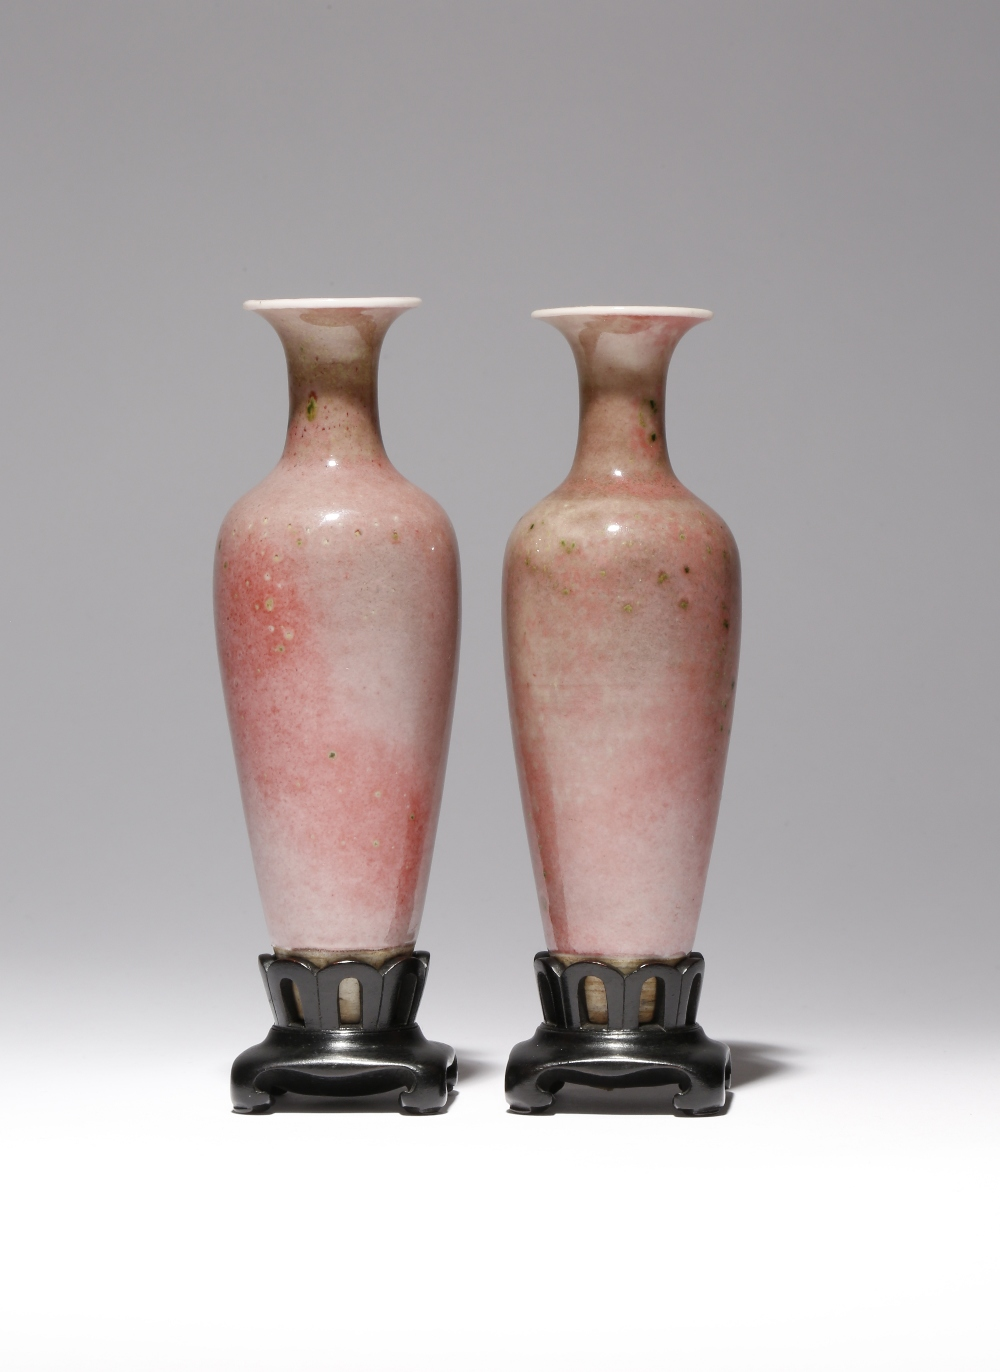 A PAIR OF CHINESE PEACHBLOOM GLAZED TAPERING VASES, LIUYEZUN LATE QING DYNASTY Each vase